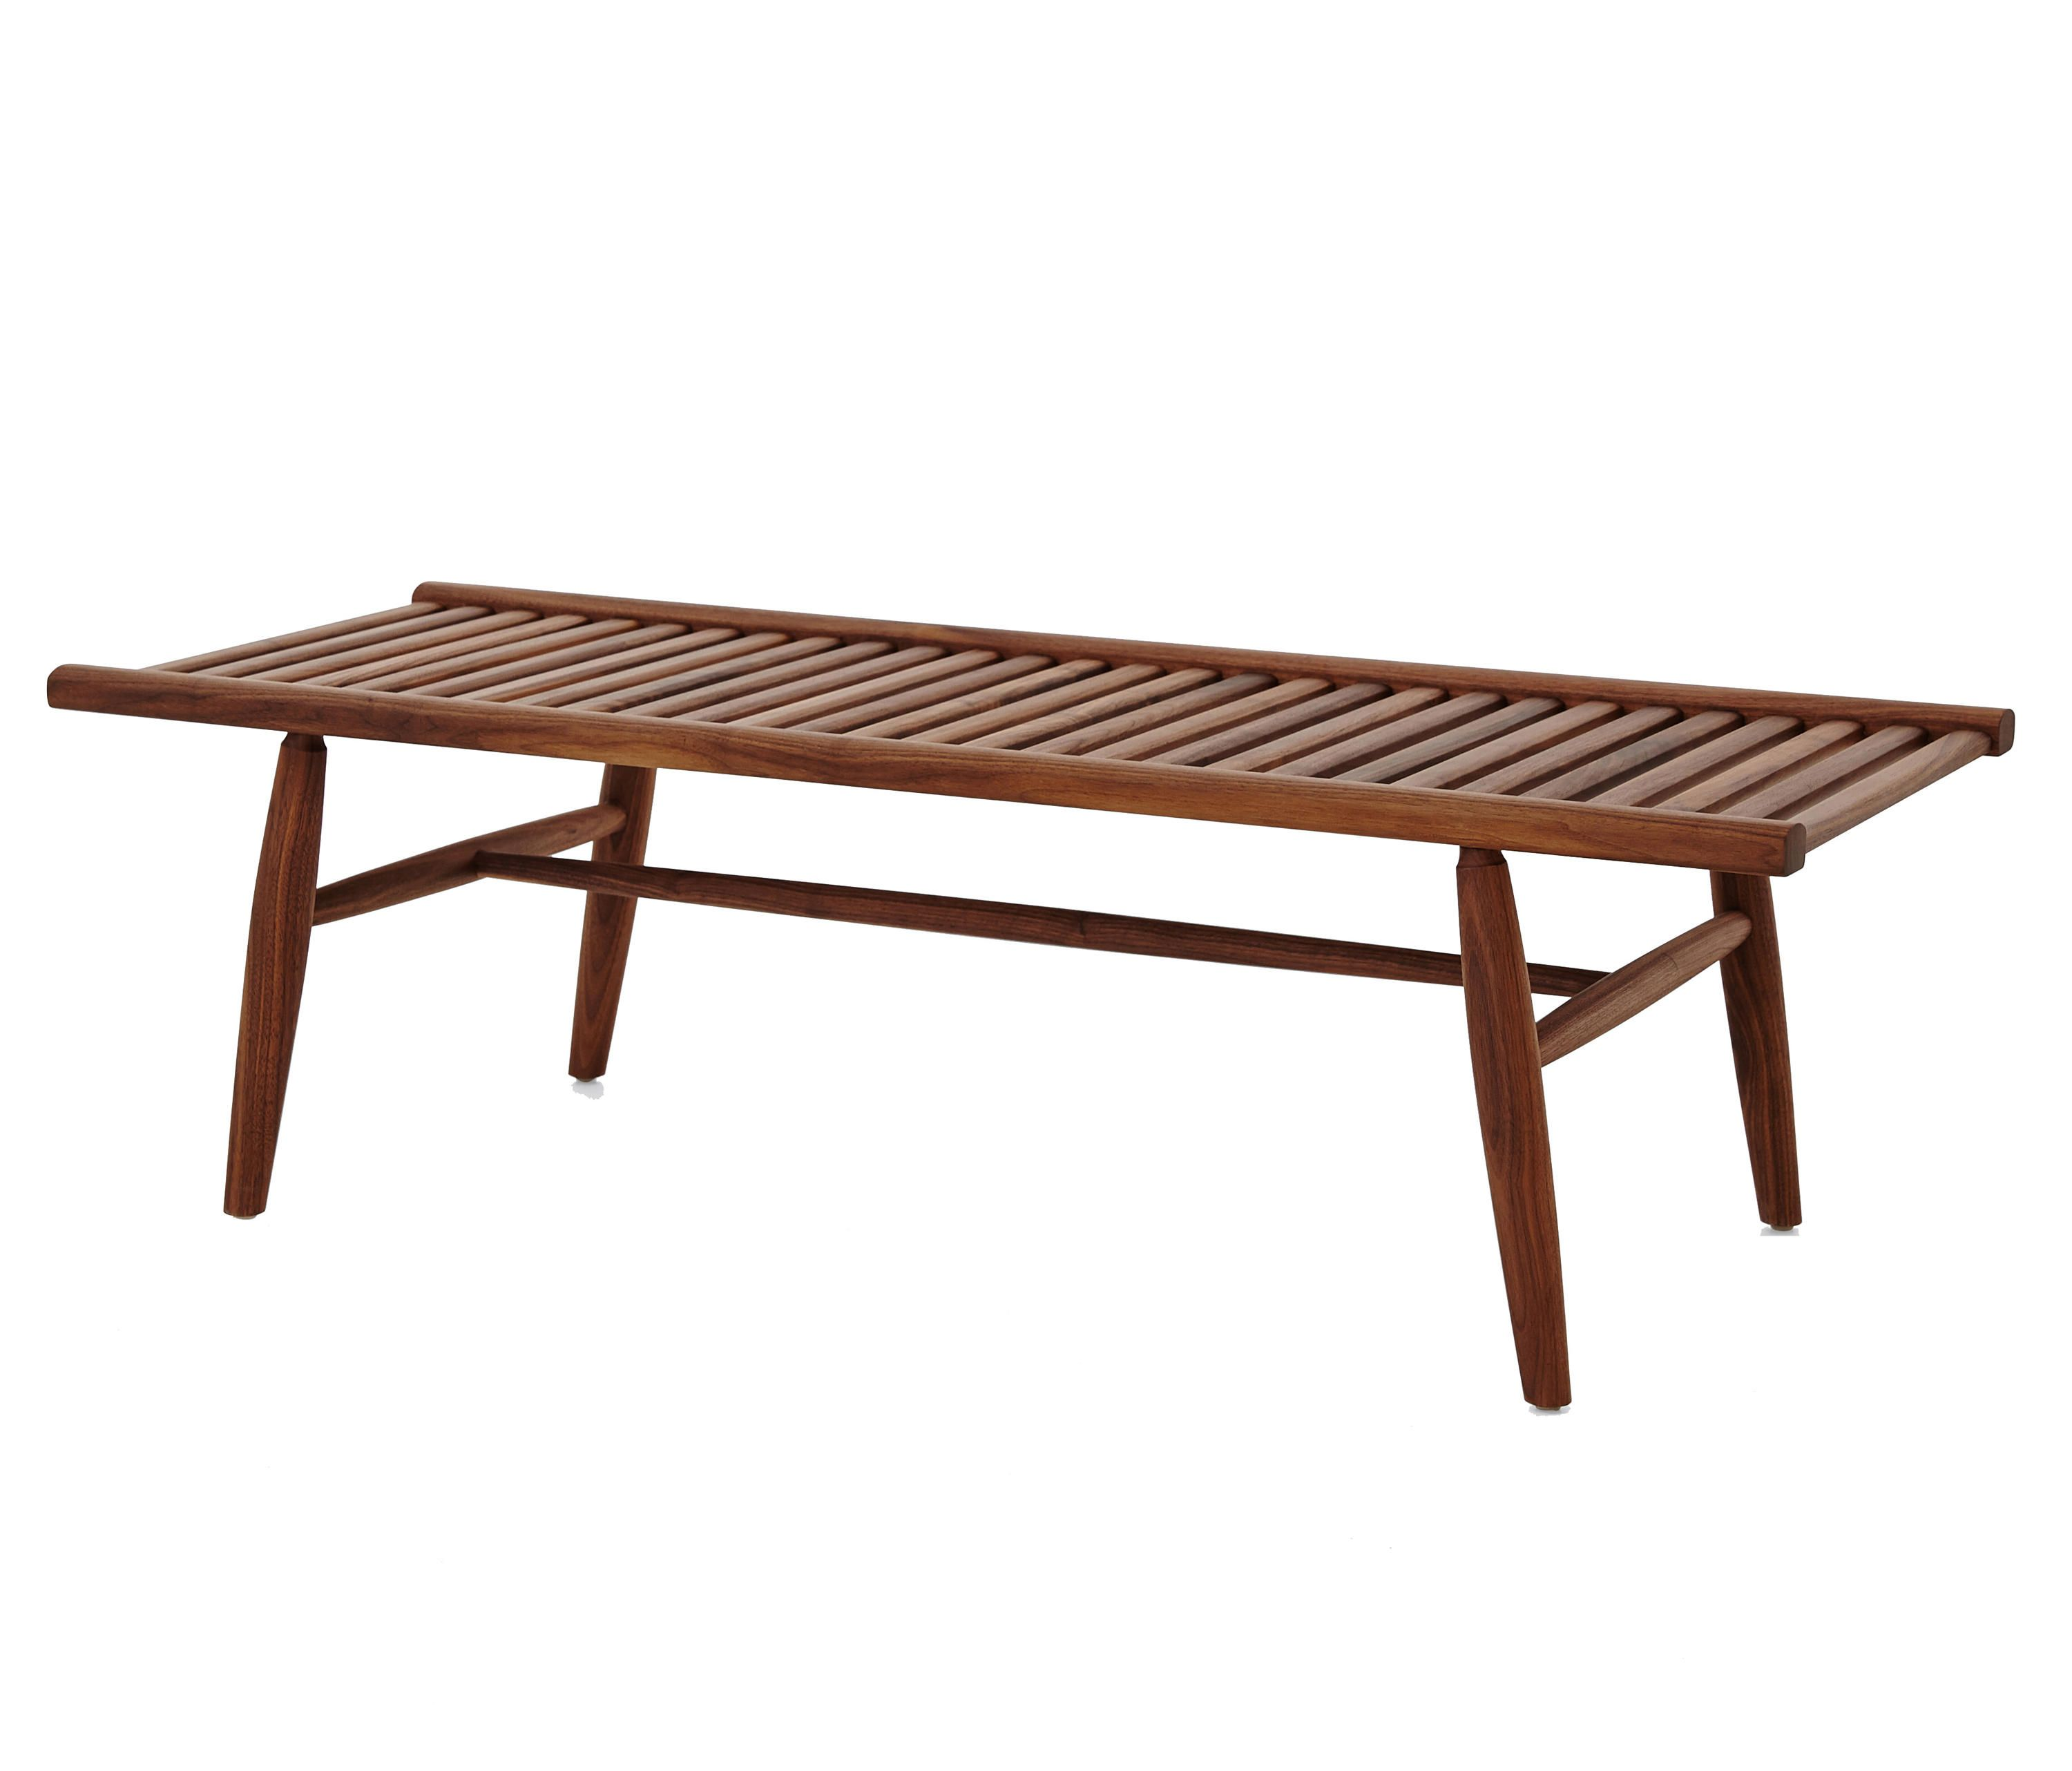 All About Long Bench Wohlert Collection By Account Name On Architonic Find Pictures Detailed Information About Retaile Projects And Brainstorms Long